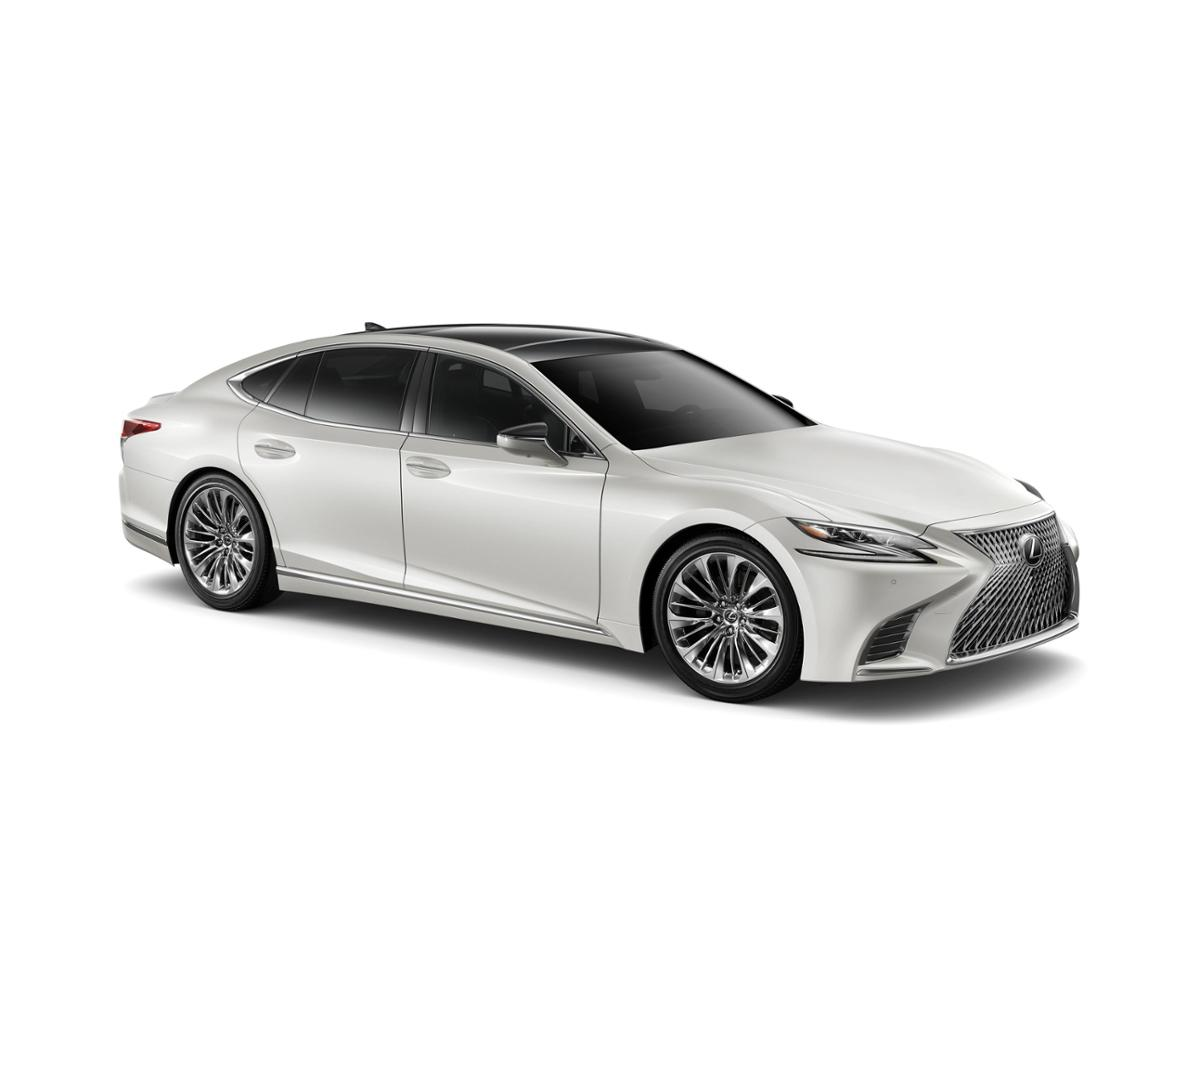 freehold eminent white pearl 2019 lexus ls 500 new for sale f190738. Black Bedroom Furniture Sets. Home Design Ideas